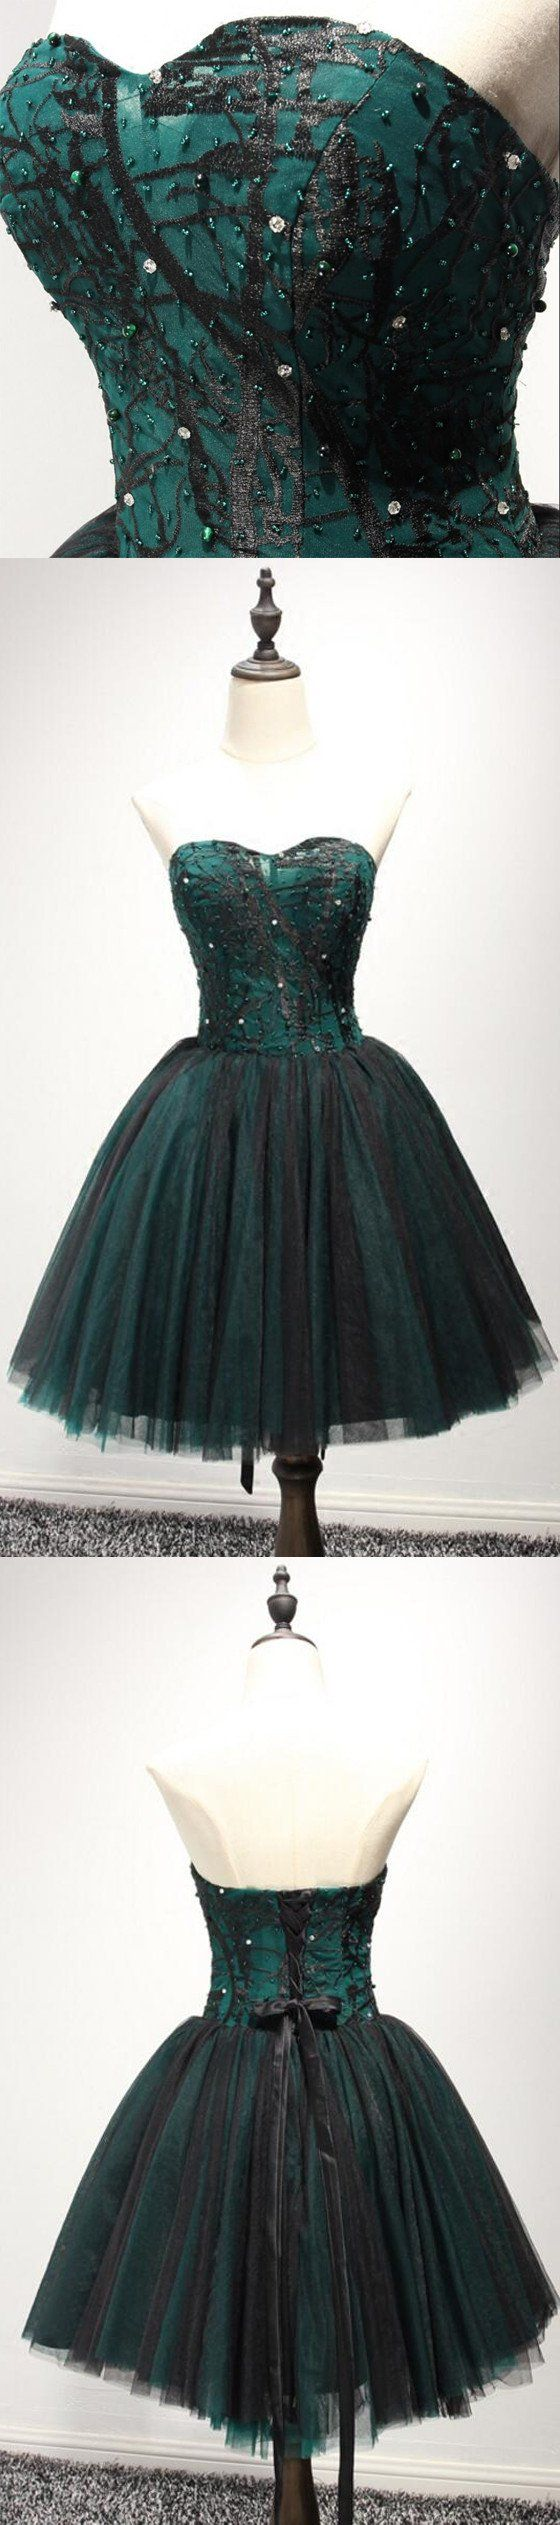 Strapless dark green black lace tulle homecoming prom dresses cm